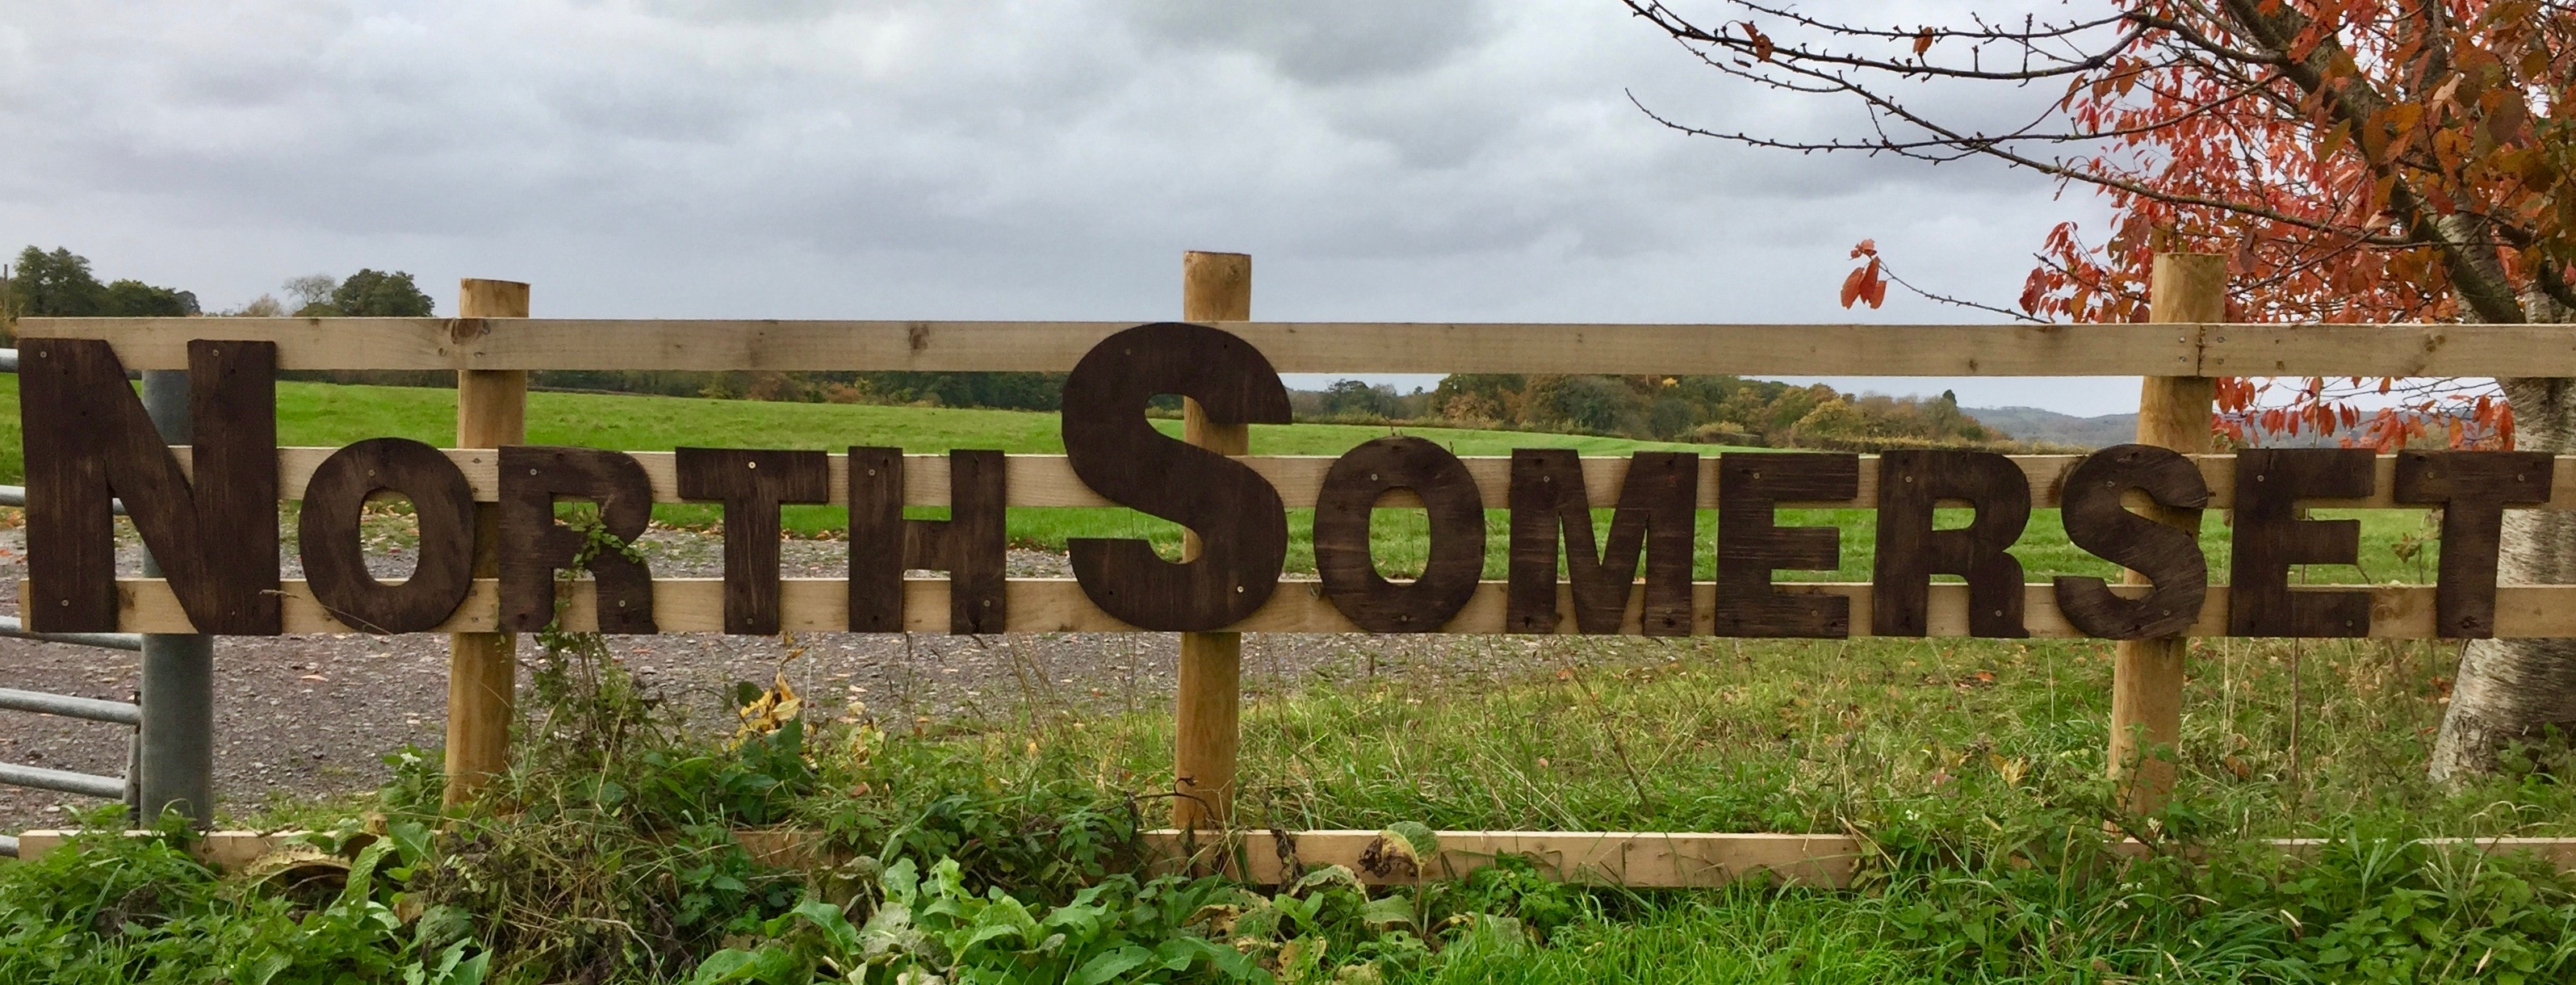 N Somerset sign